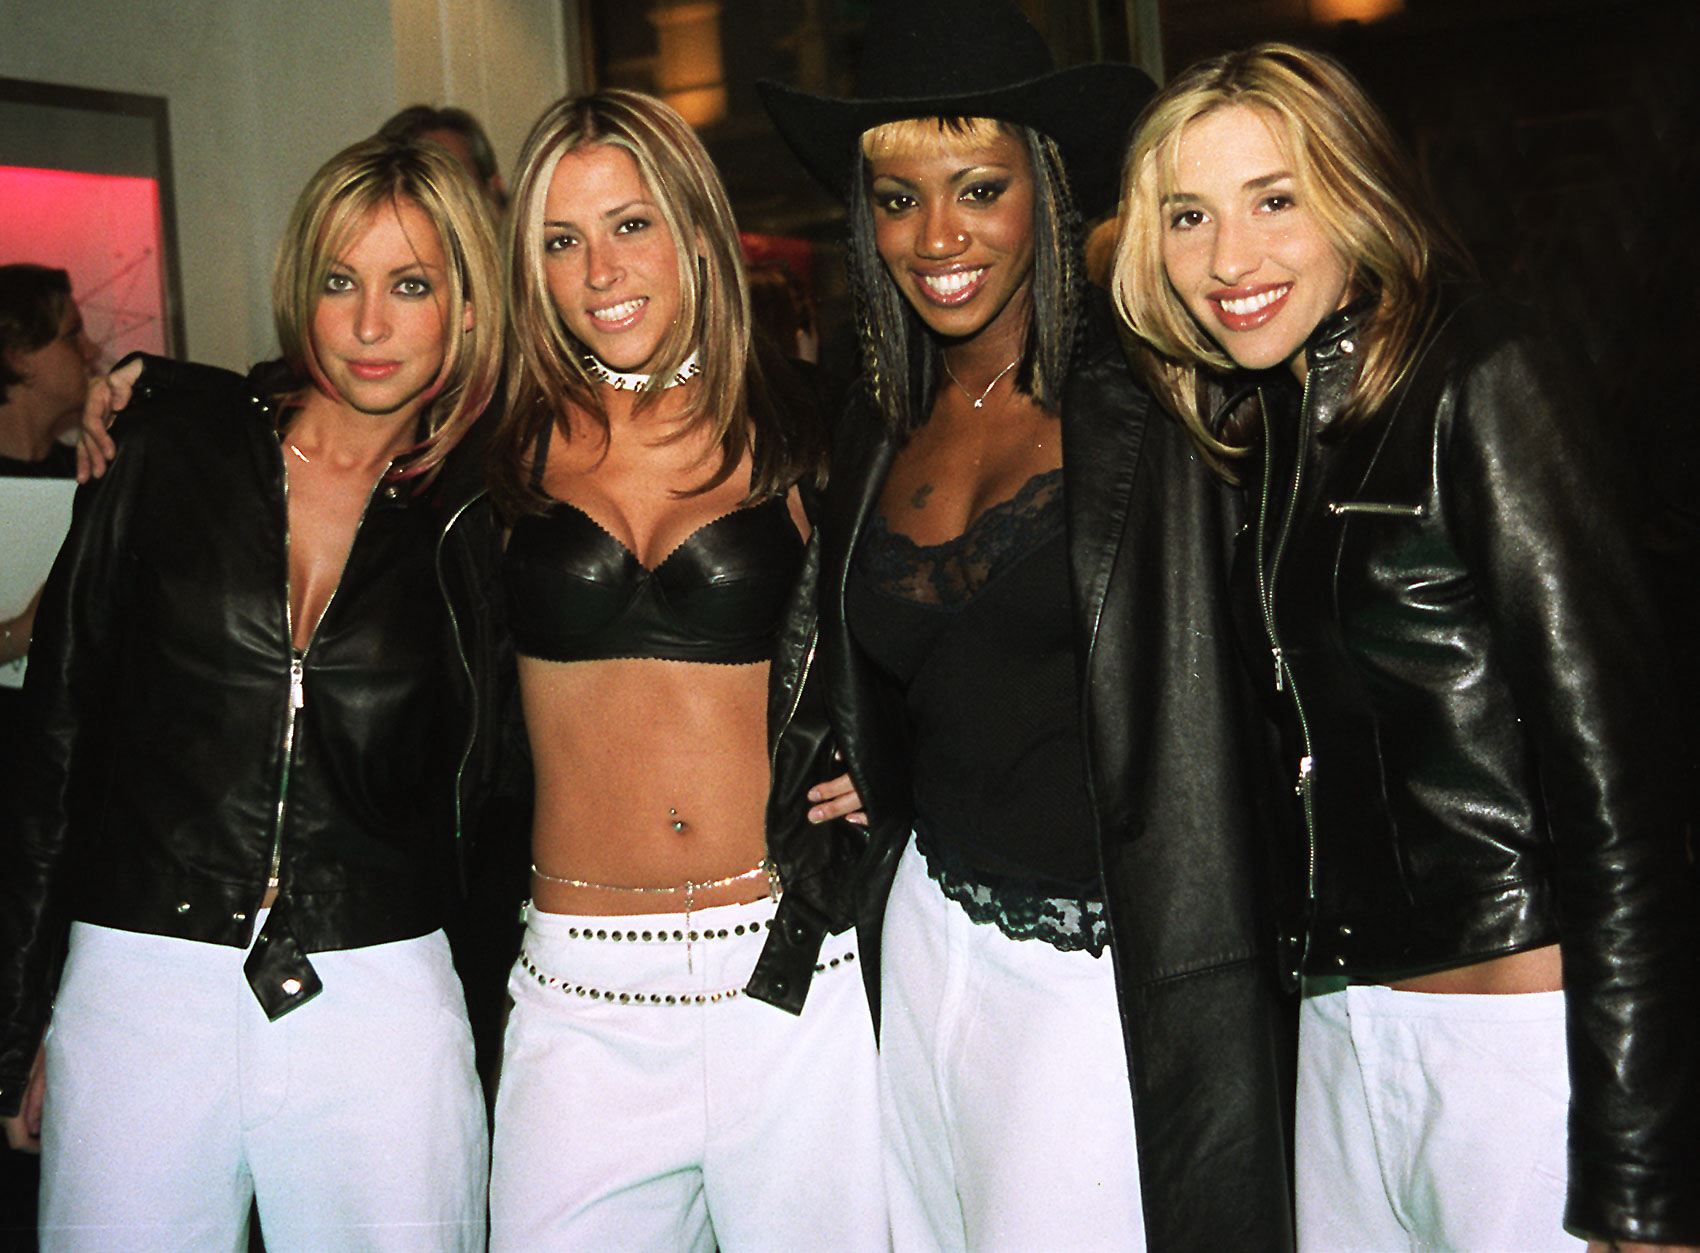 9 Girl Groups From The '90s You Probably Forgot About, But